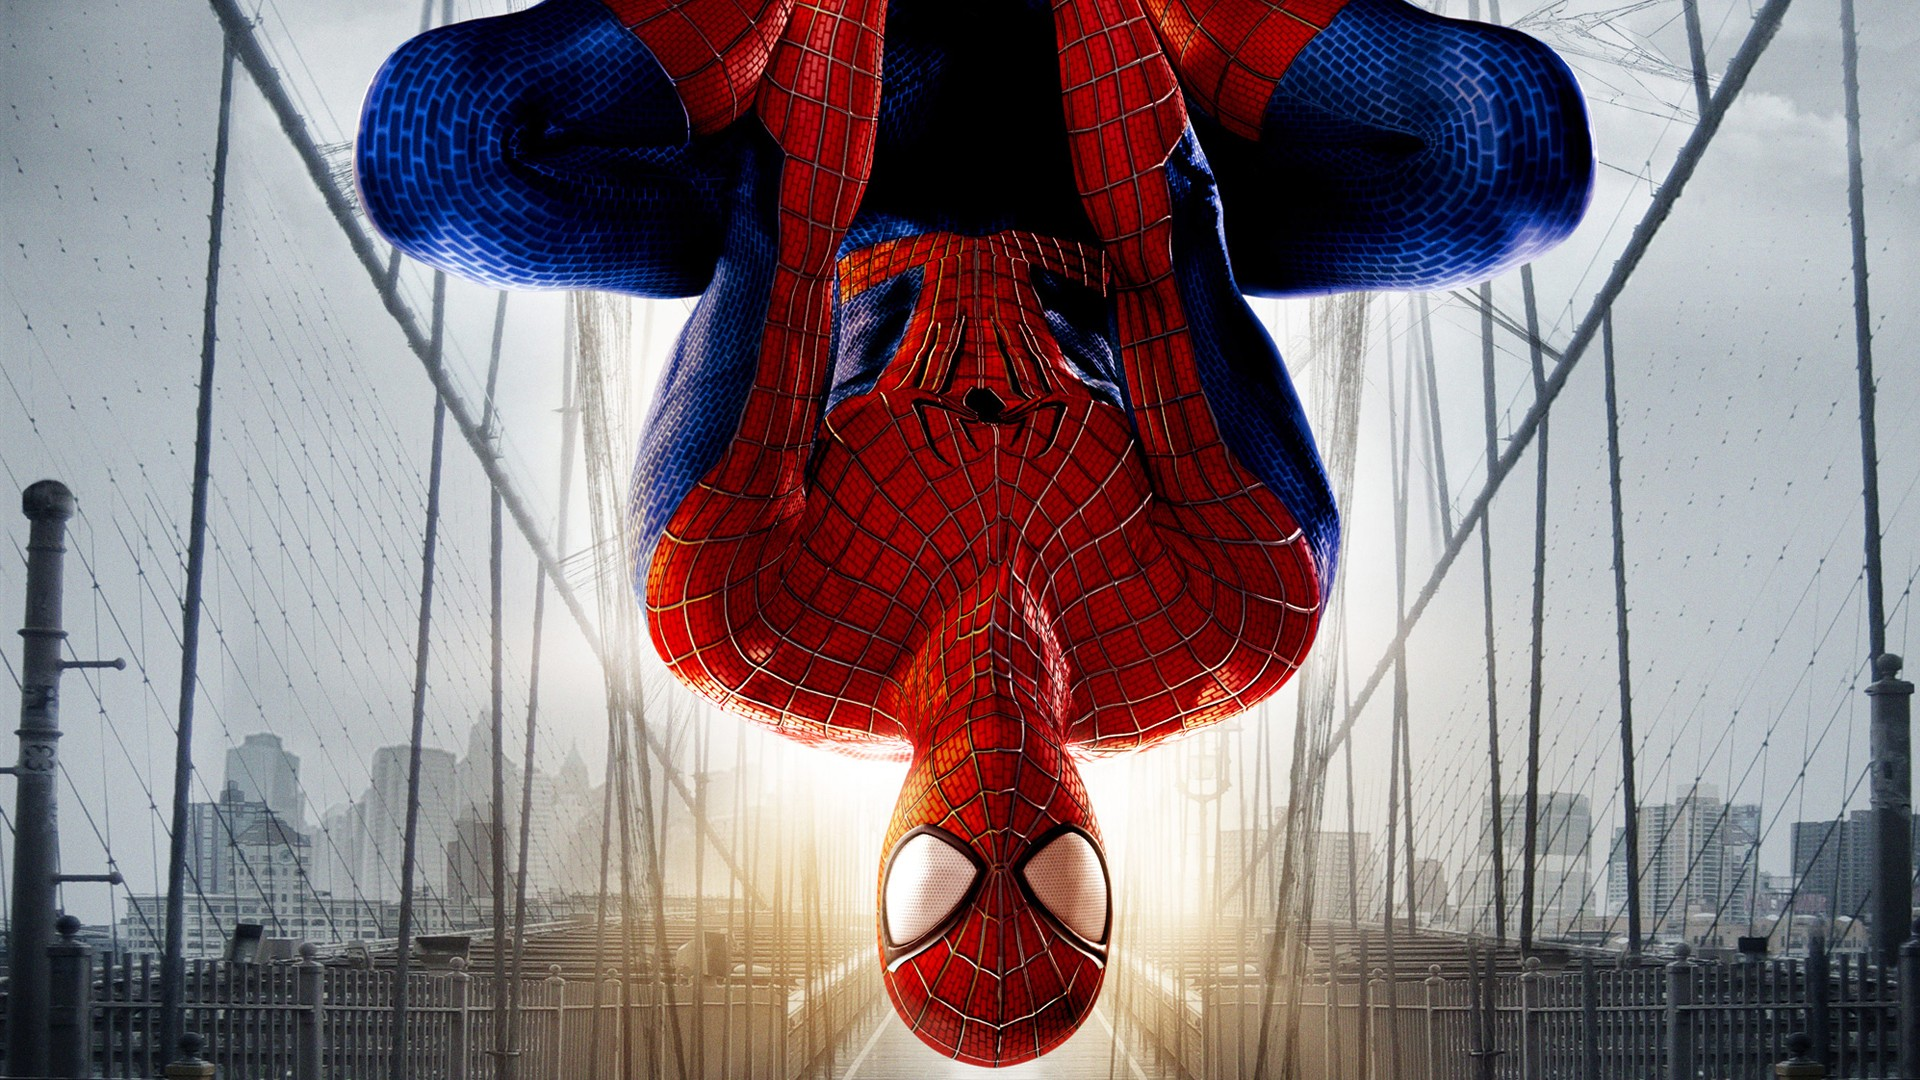 Amazing Spider-Man Titles Removed From Digital Stores